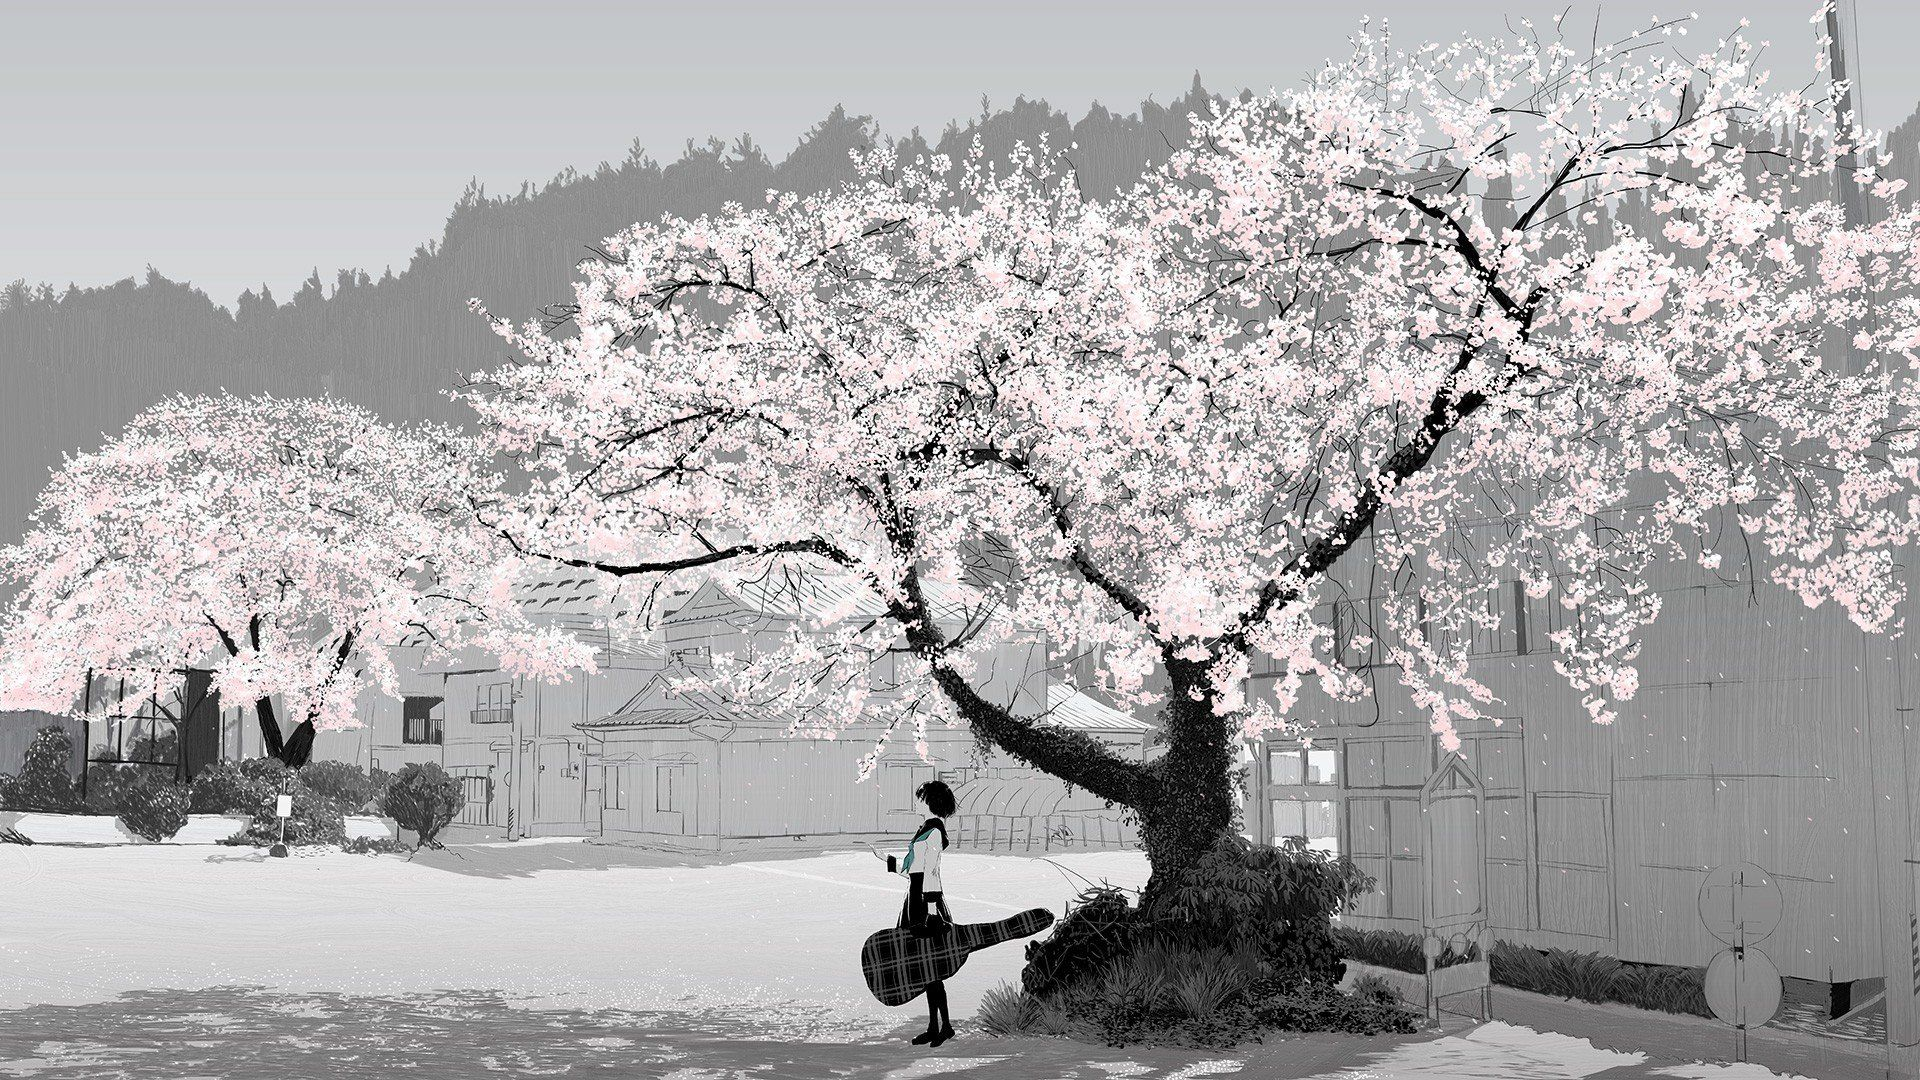 1920x1080 wallpaper.wiki-Download-Anime-Cherry-Blossom-Image-PIC-WPC0012439 ...